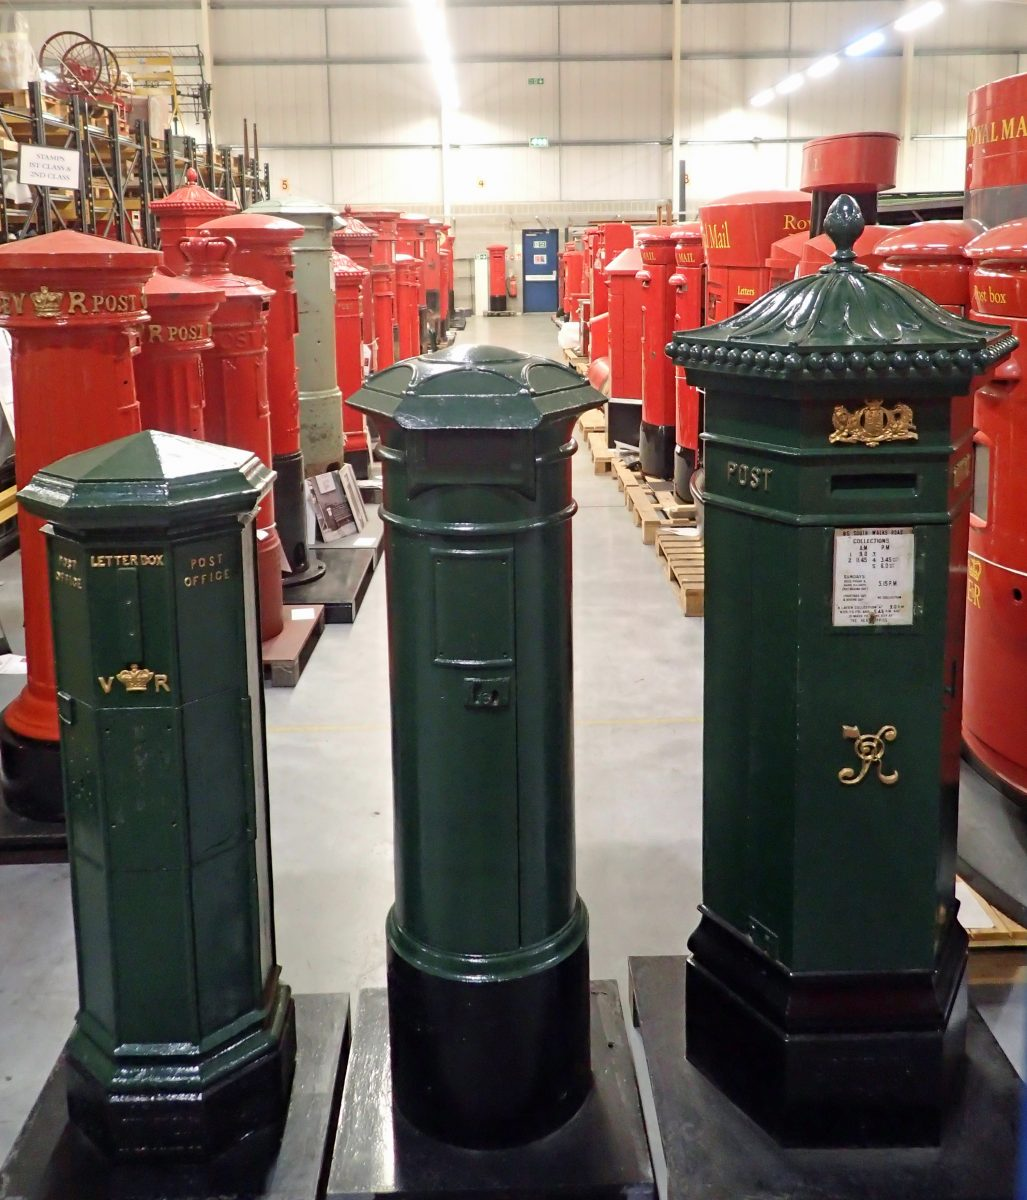 Early Mainland pillar box, First National Standard pillar box and Penfold pillar box; three green painted Victorian pillar boxes in The Postal Museum collection. The author contends that these are painted the incorrect green, additionally being too dark a shade.